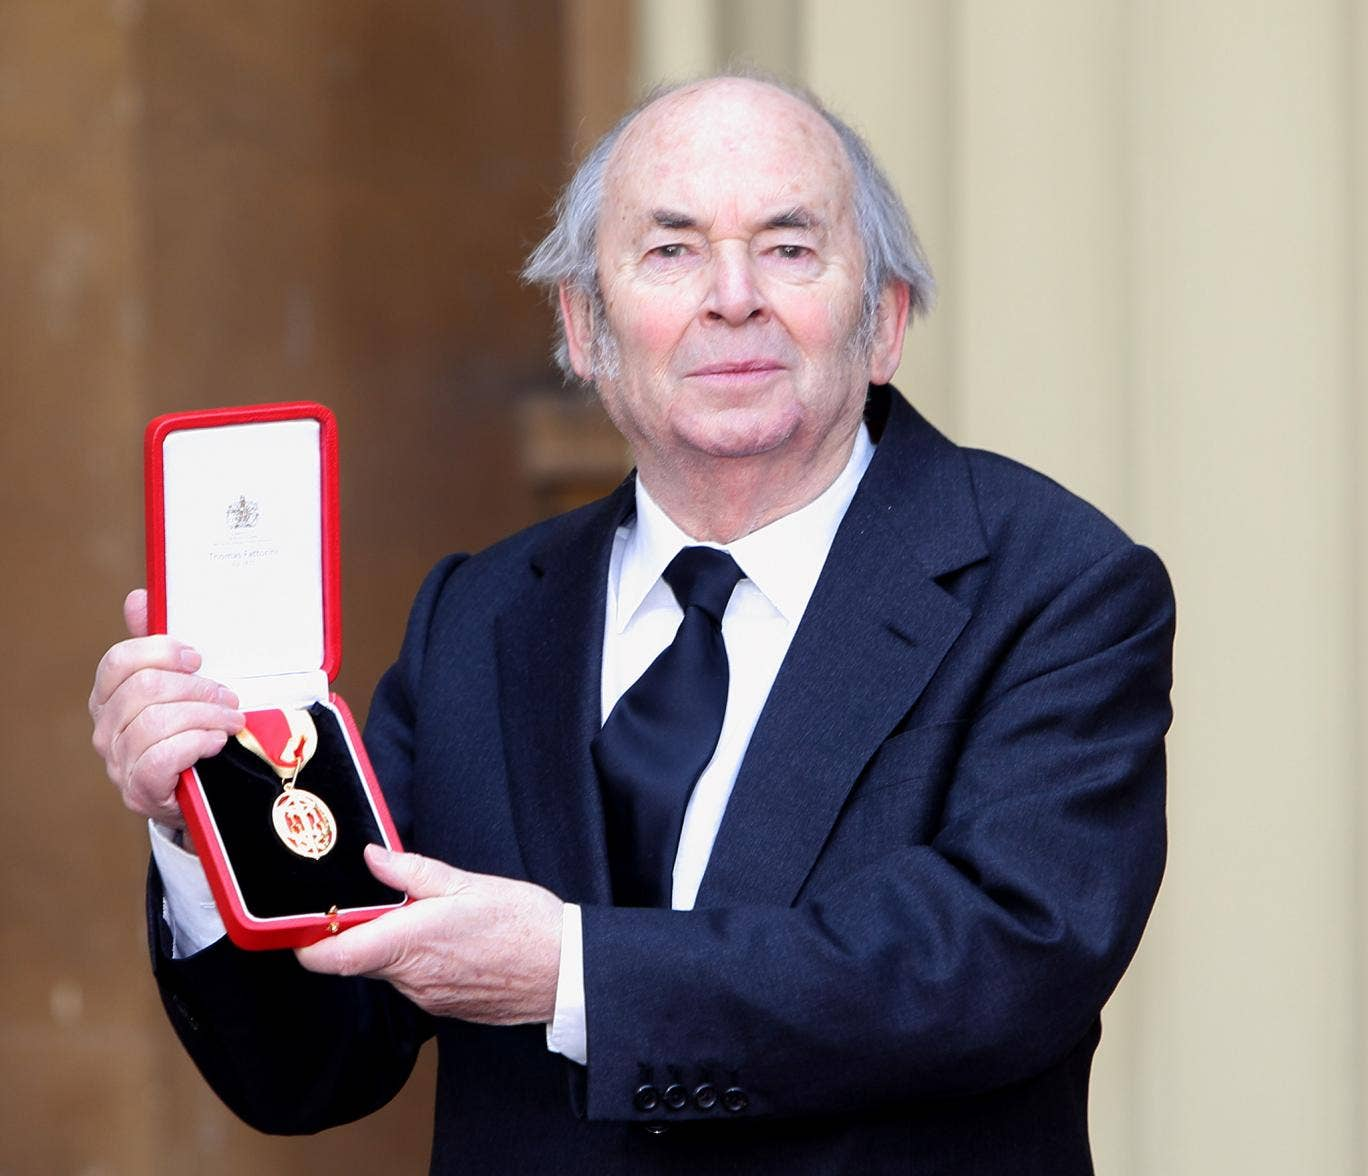 Sir Quentin Blake receiving his investiture at Buckingham Palace